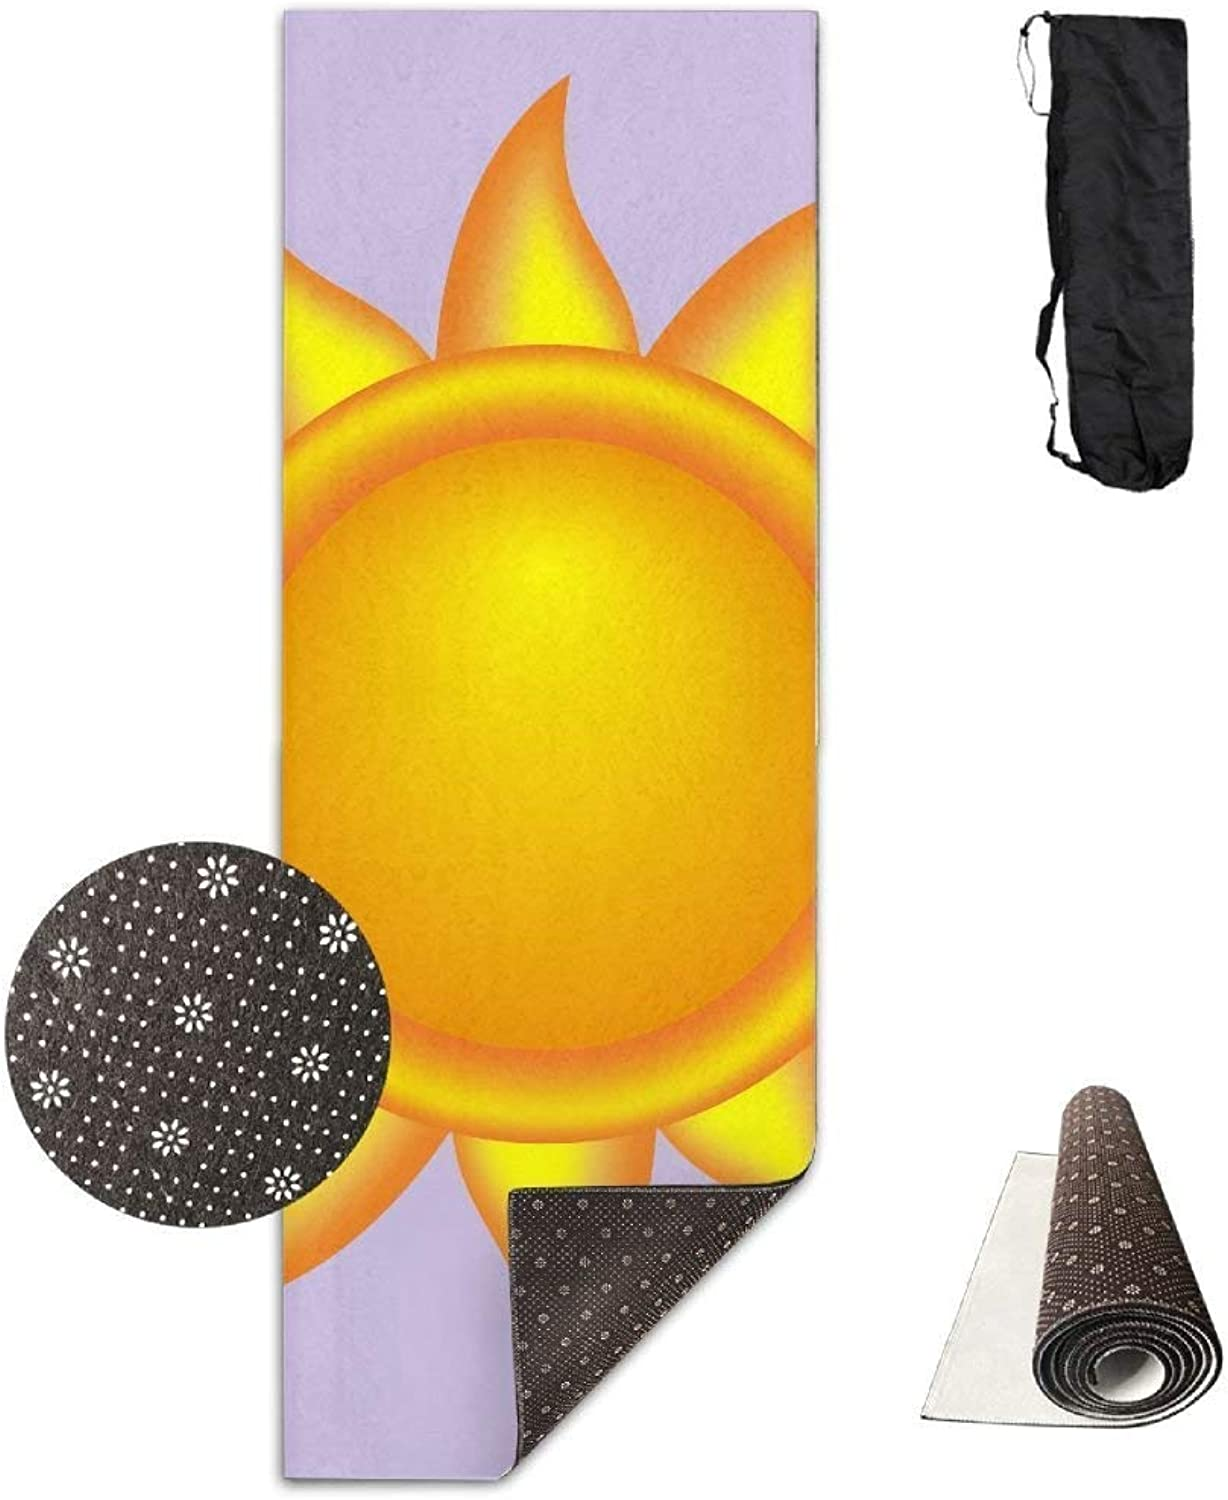 Yoga Mat Non Slip Hot Sun Printed 24 X 71 Inches Premium for Fitness Exercise Pilates with Carrying Strap